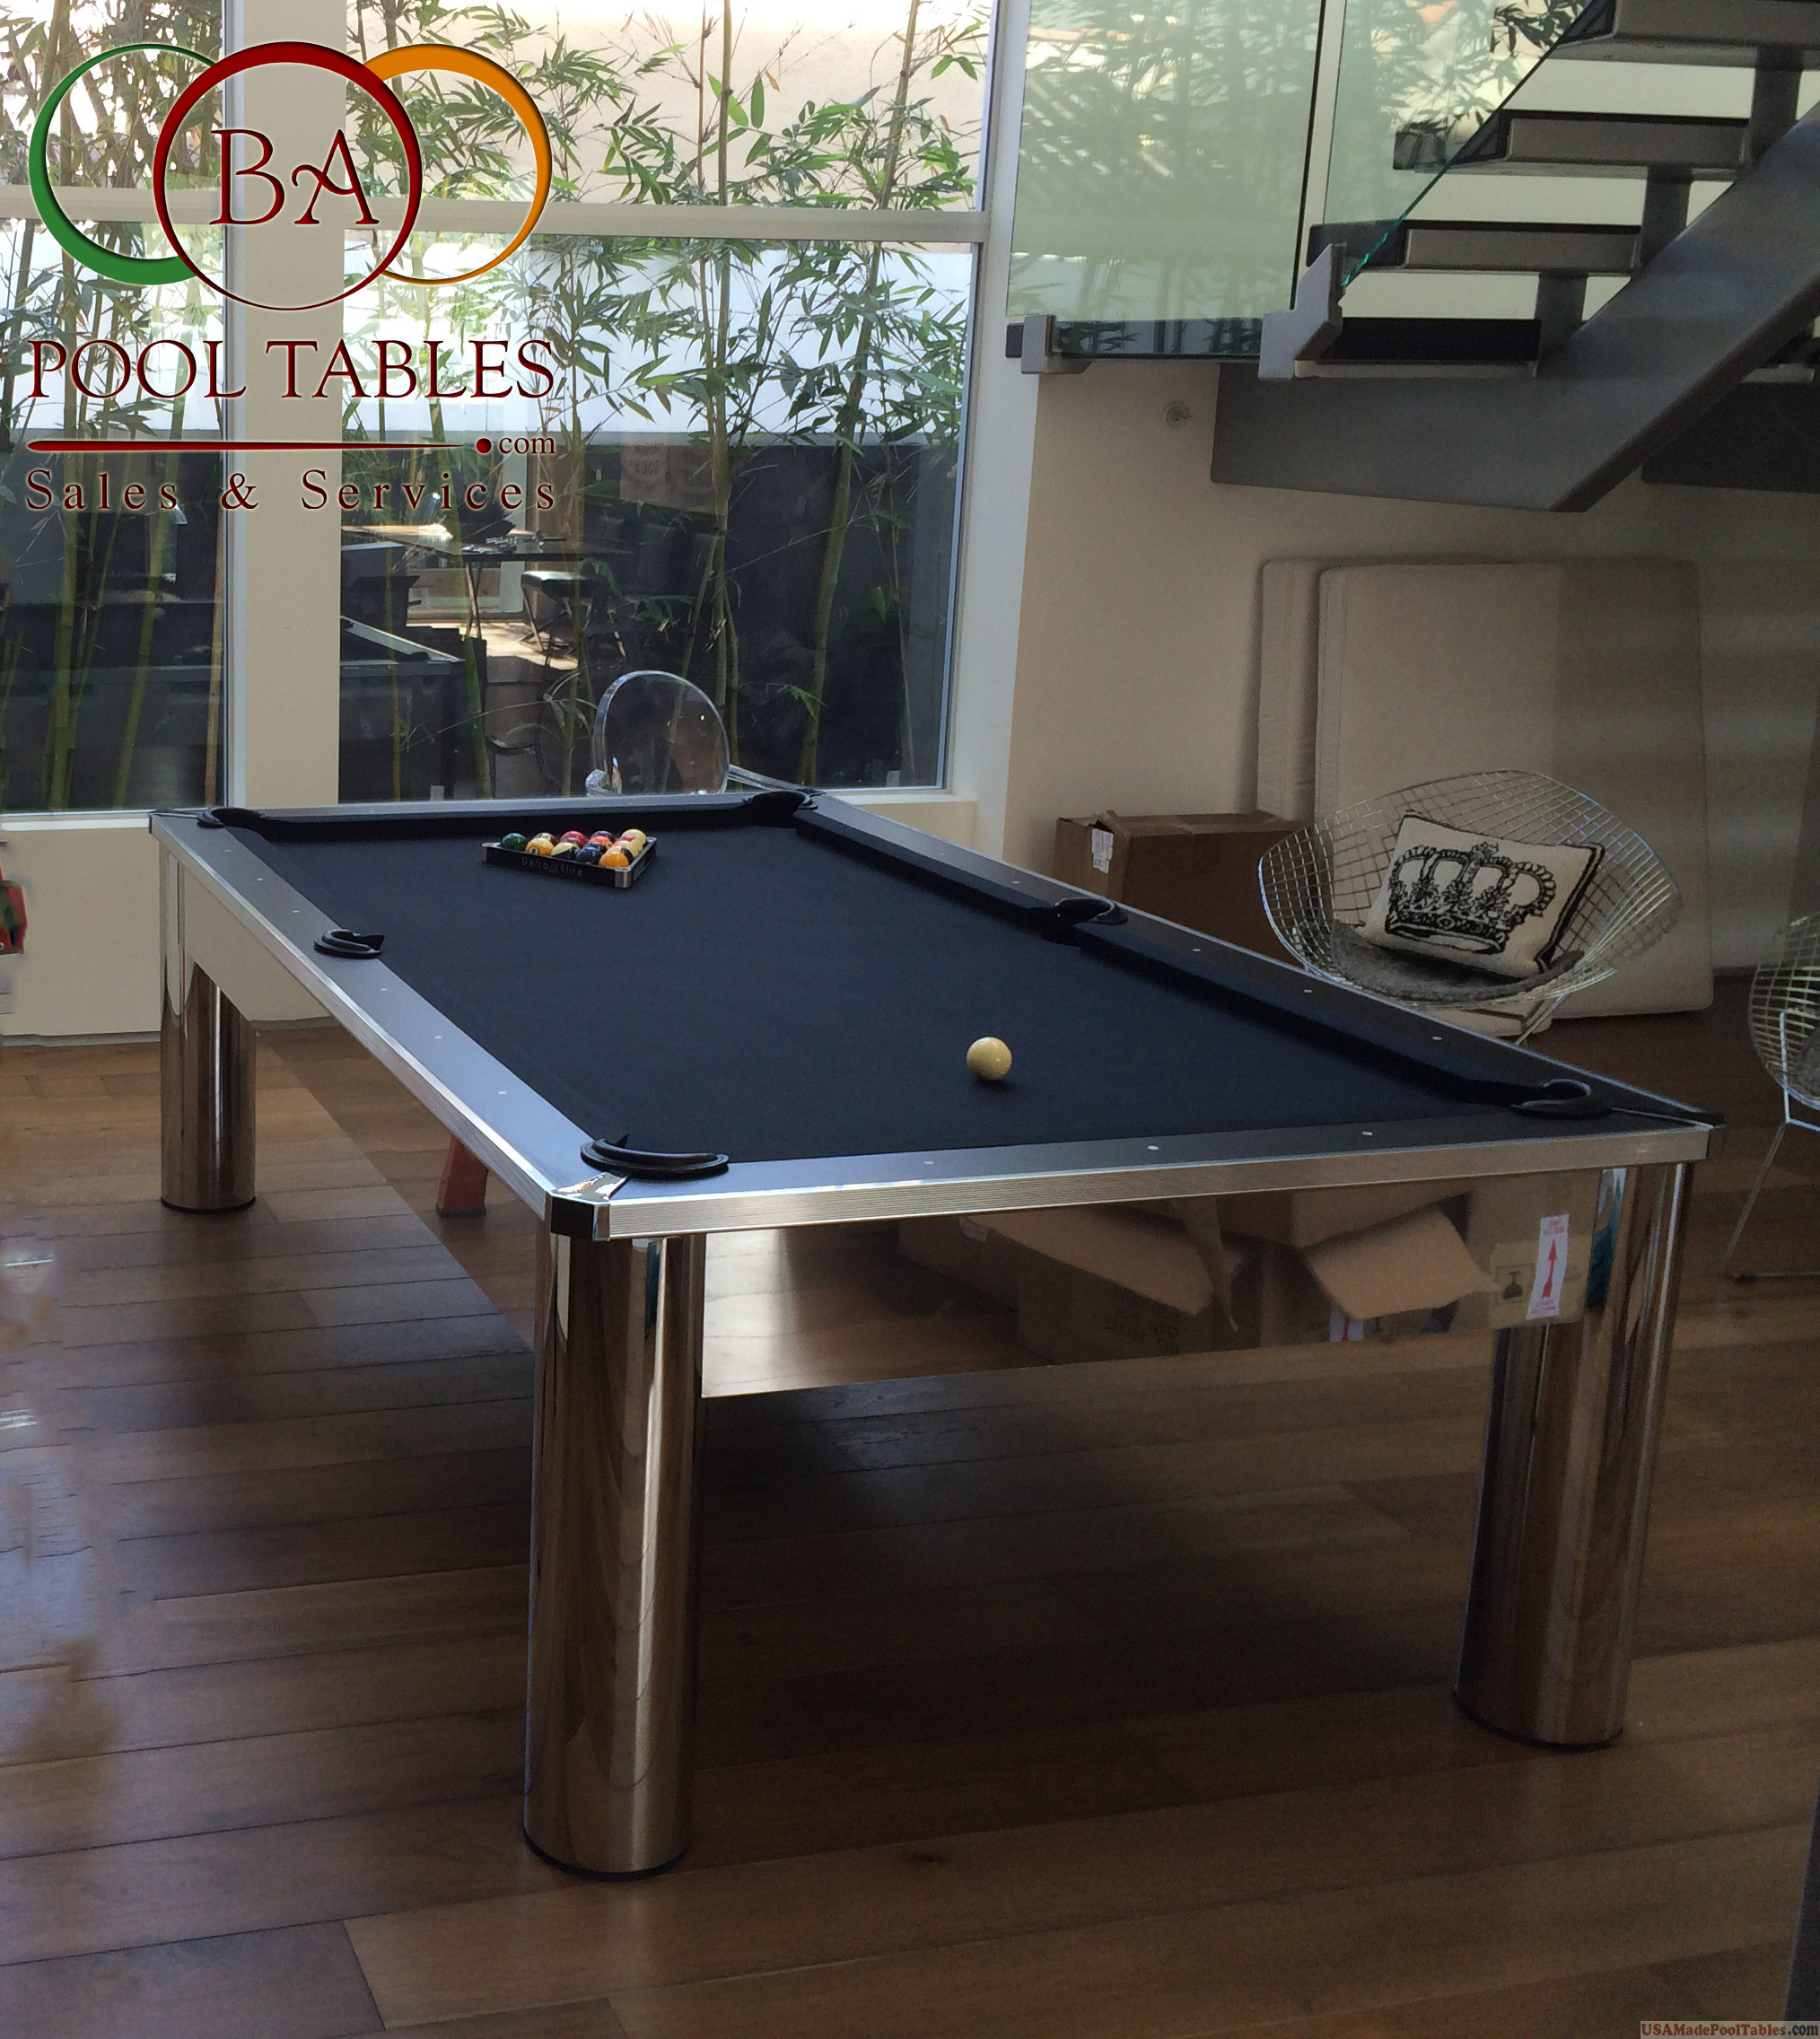 CONTEMPORARY POOL TABLES MODERN POOL TABLES COSMOPOLITAN - Chrome pool table